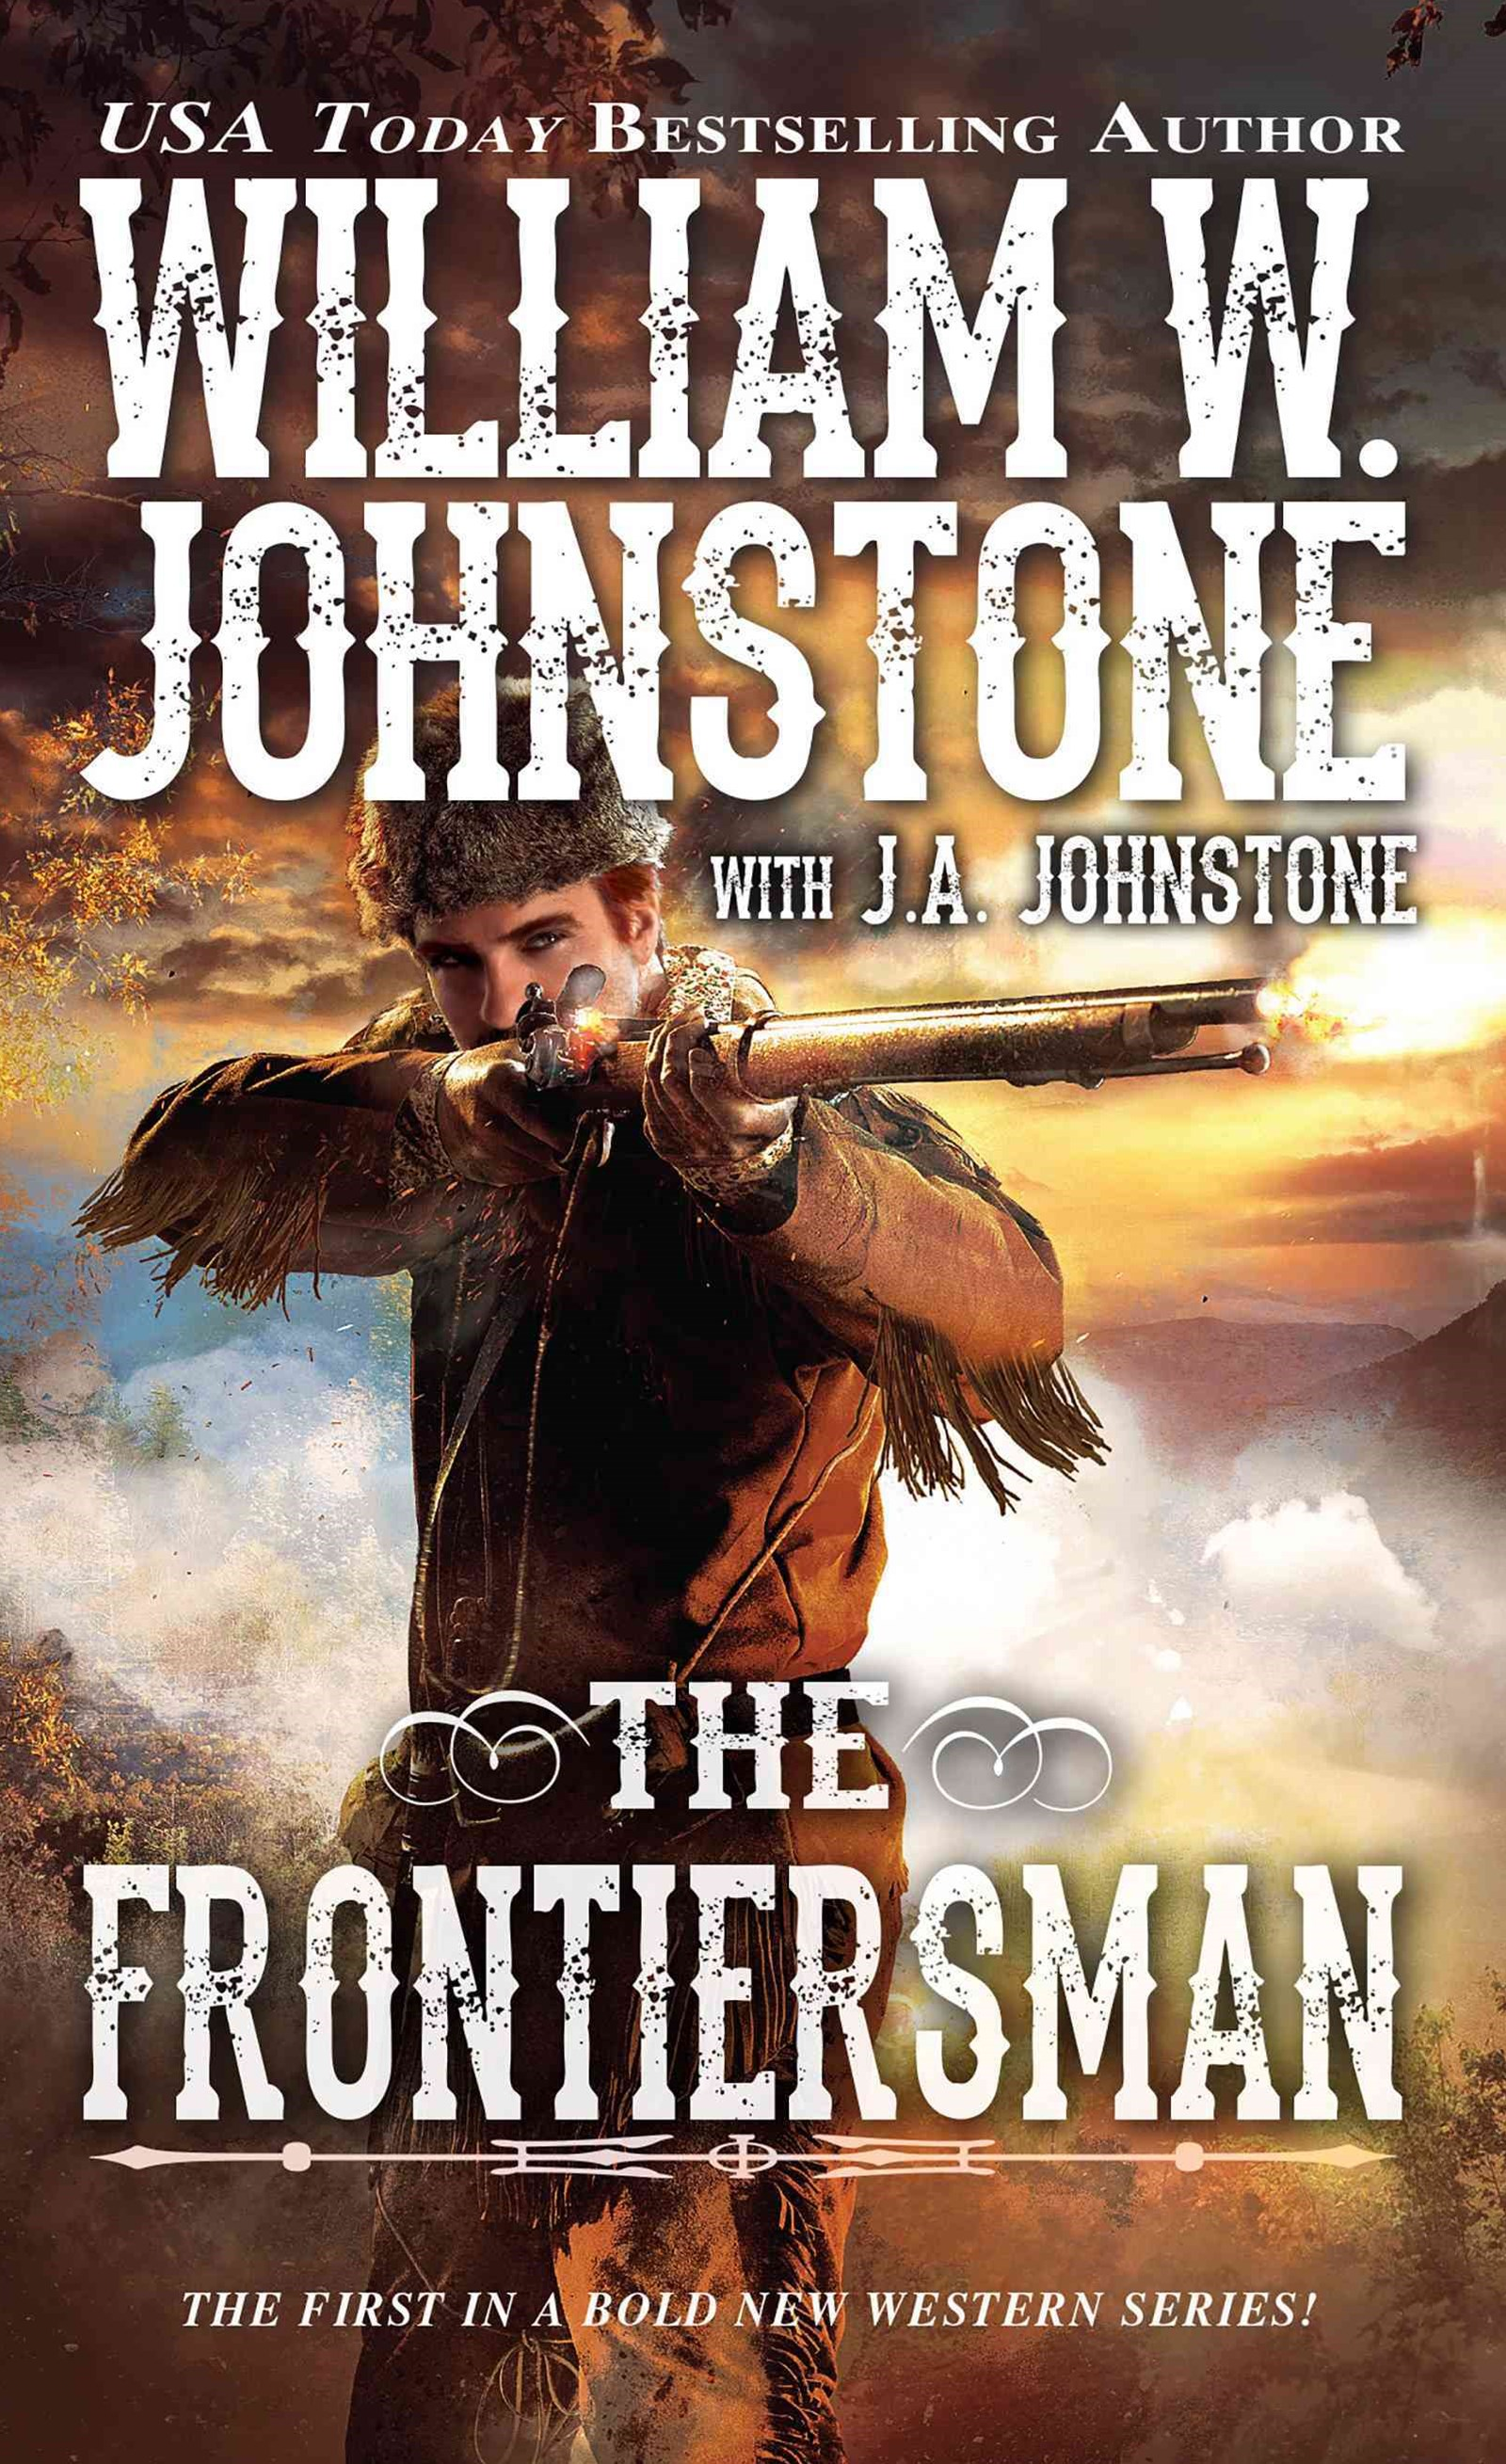 The Frontiersman